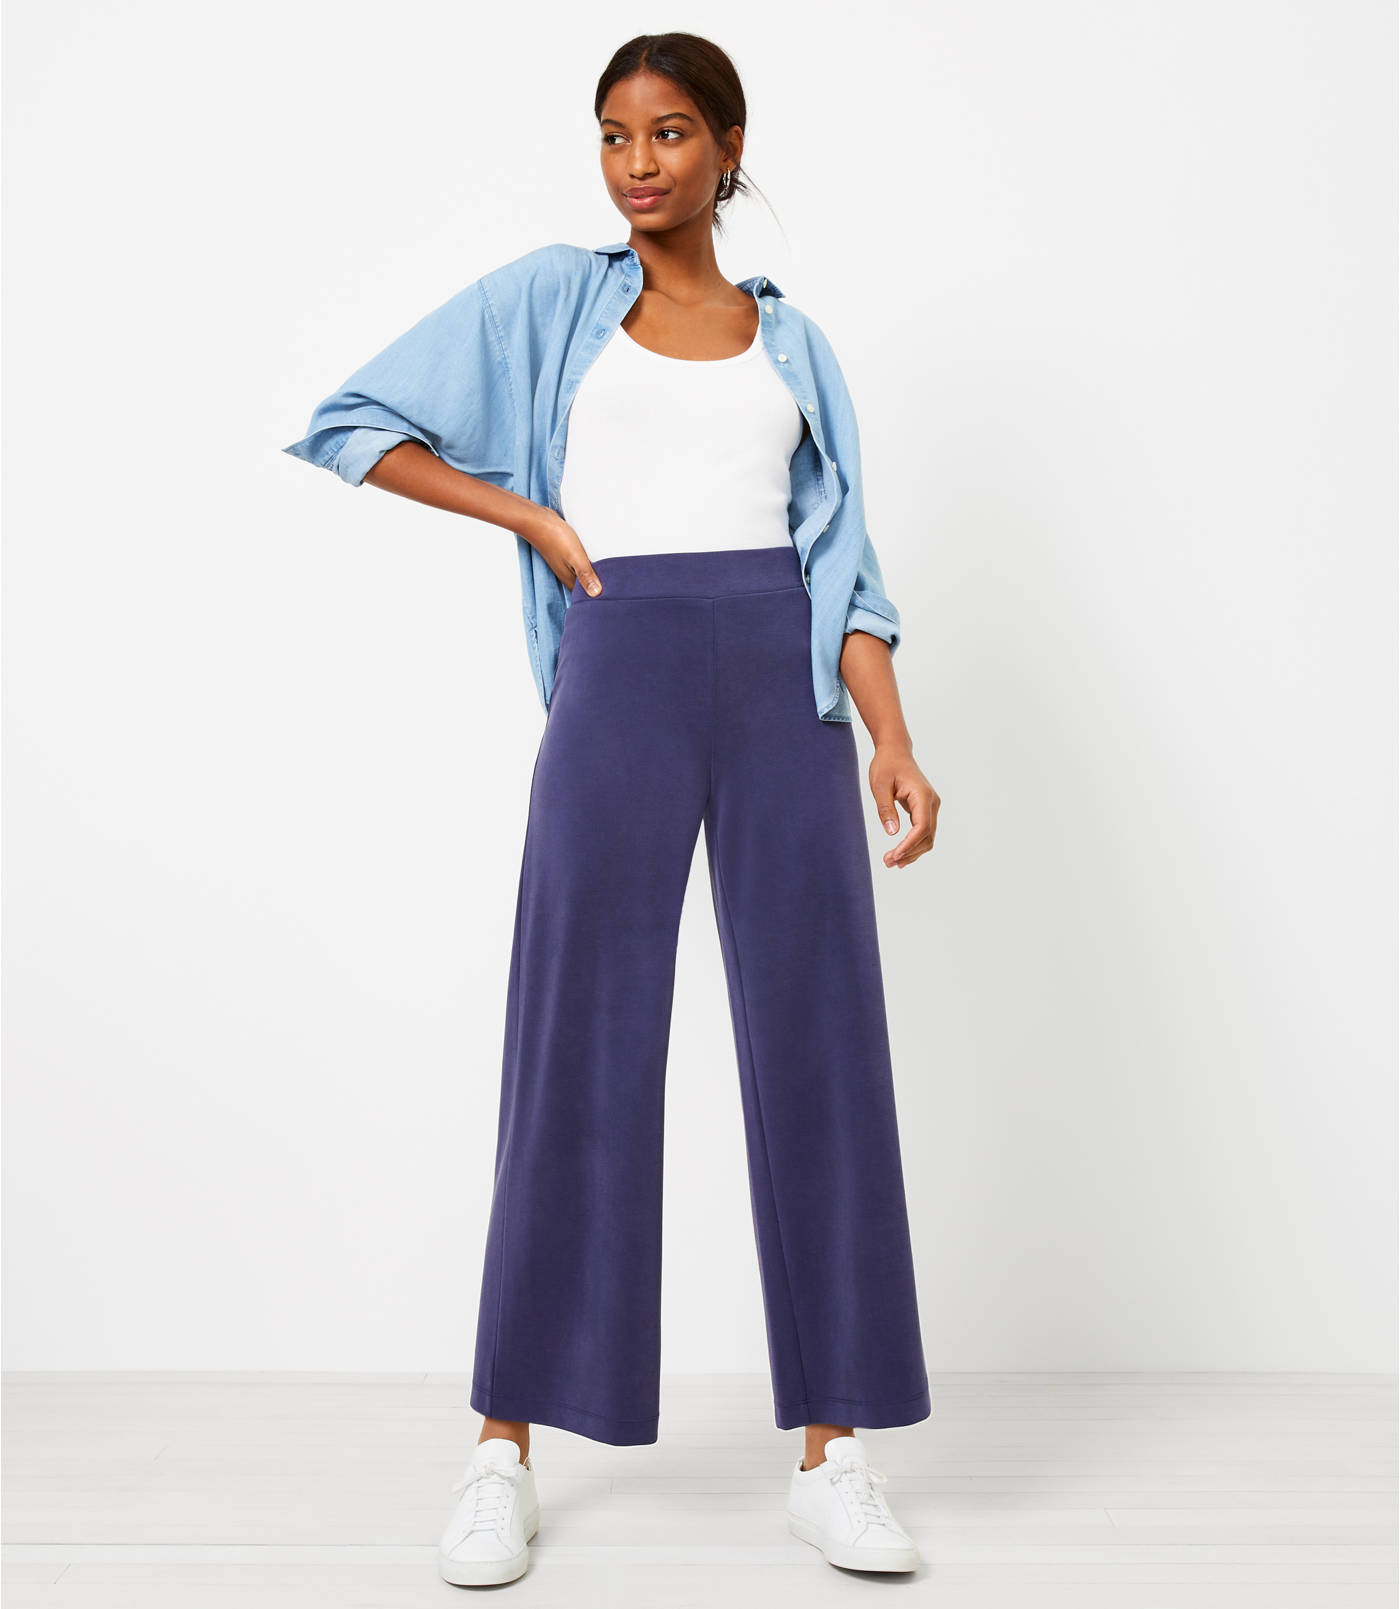 LOFT up to 85% off!